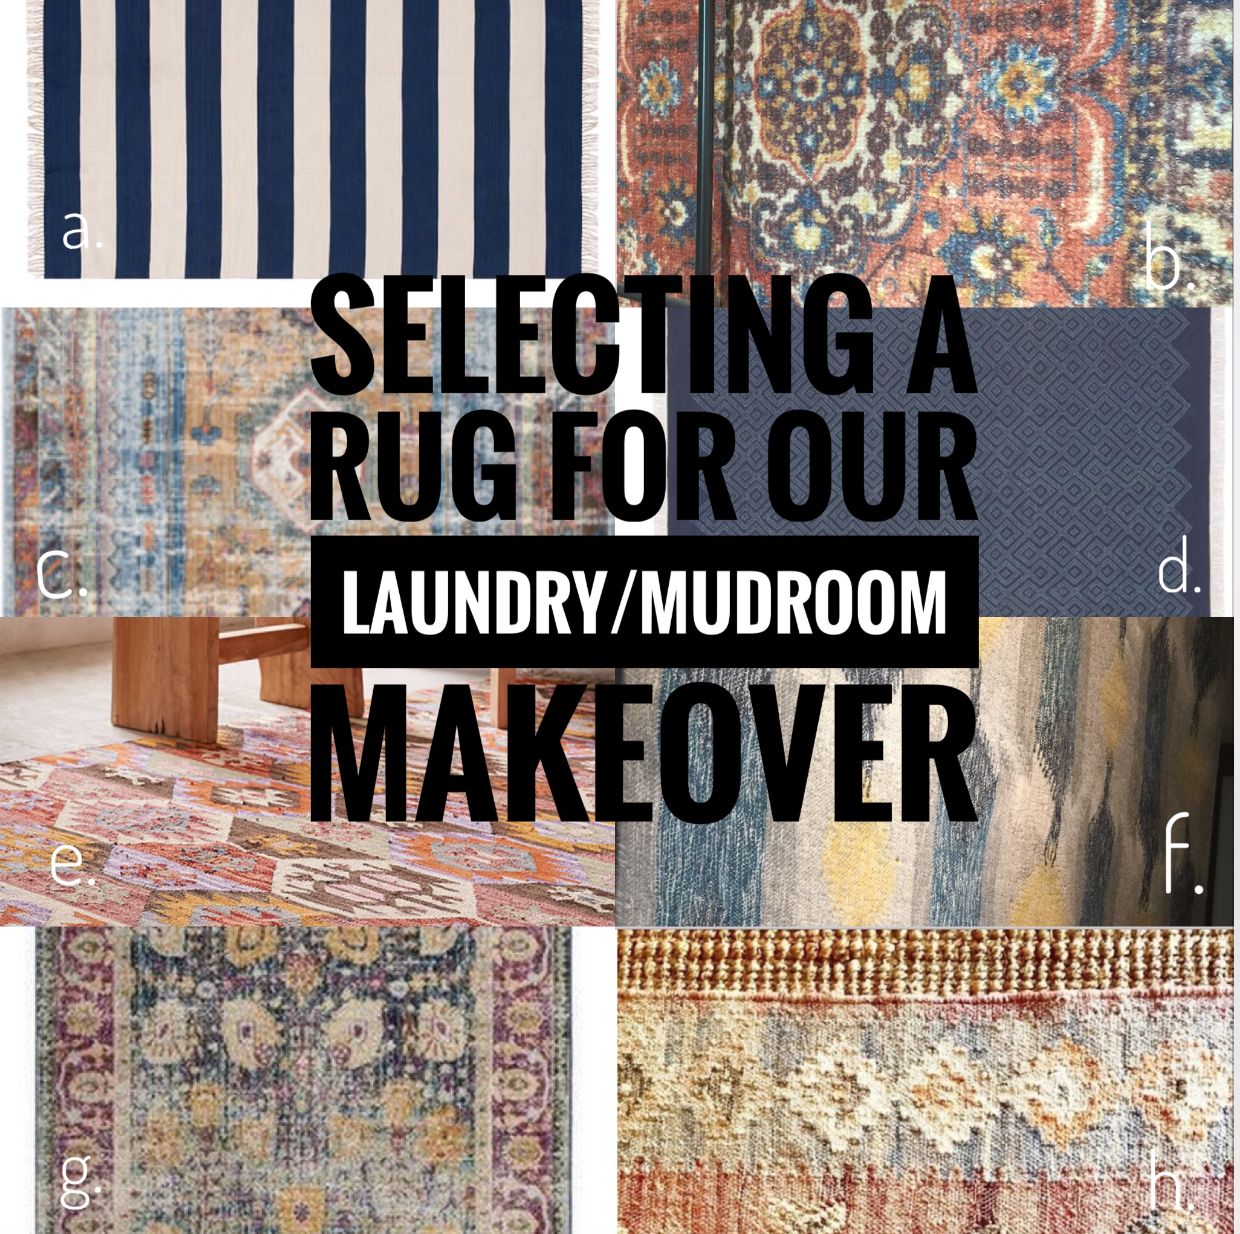 Narrowing the rug choices down.